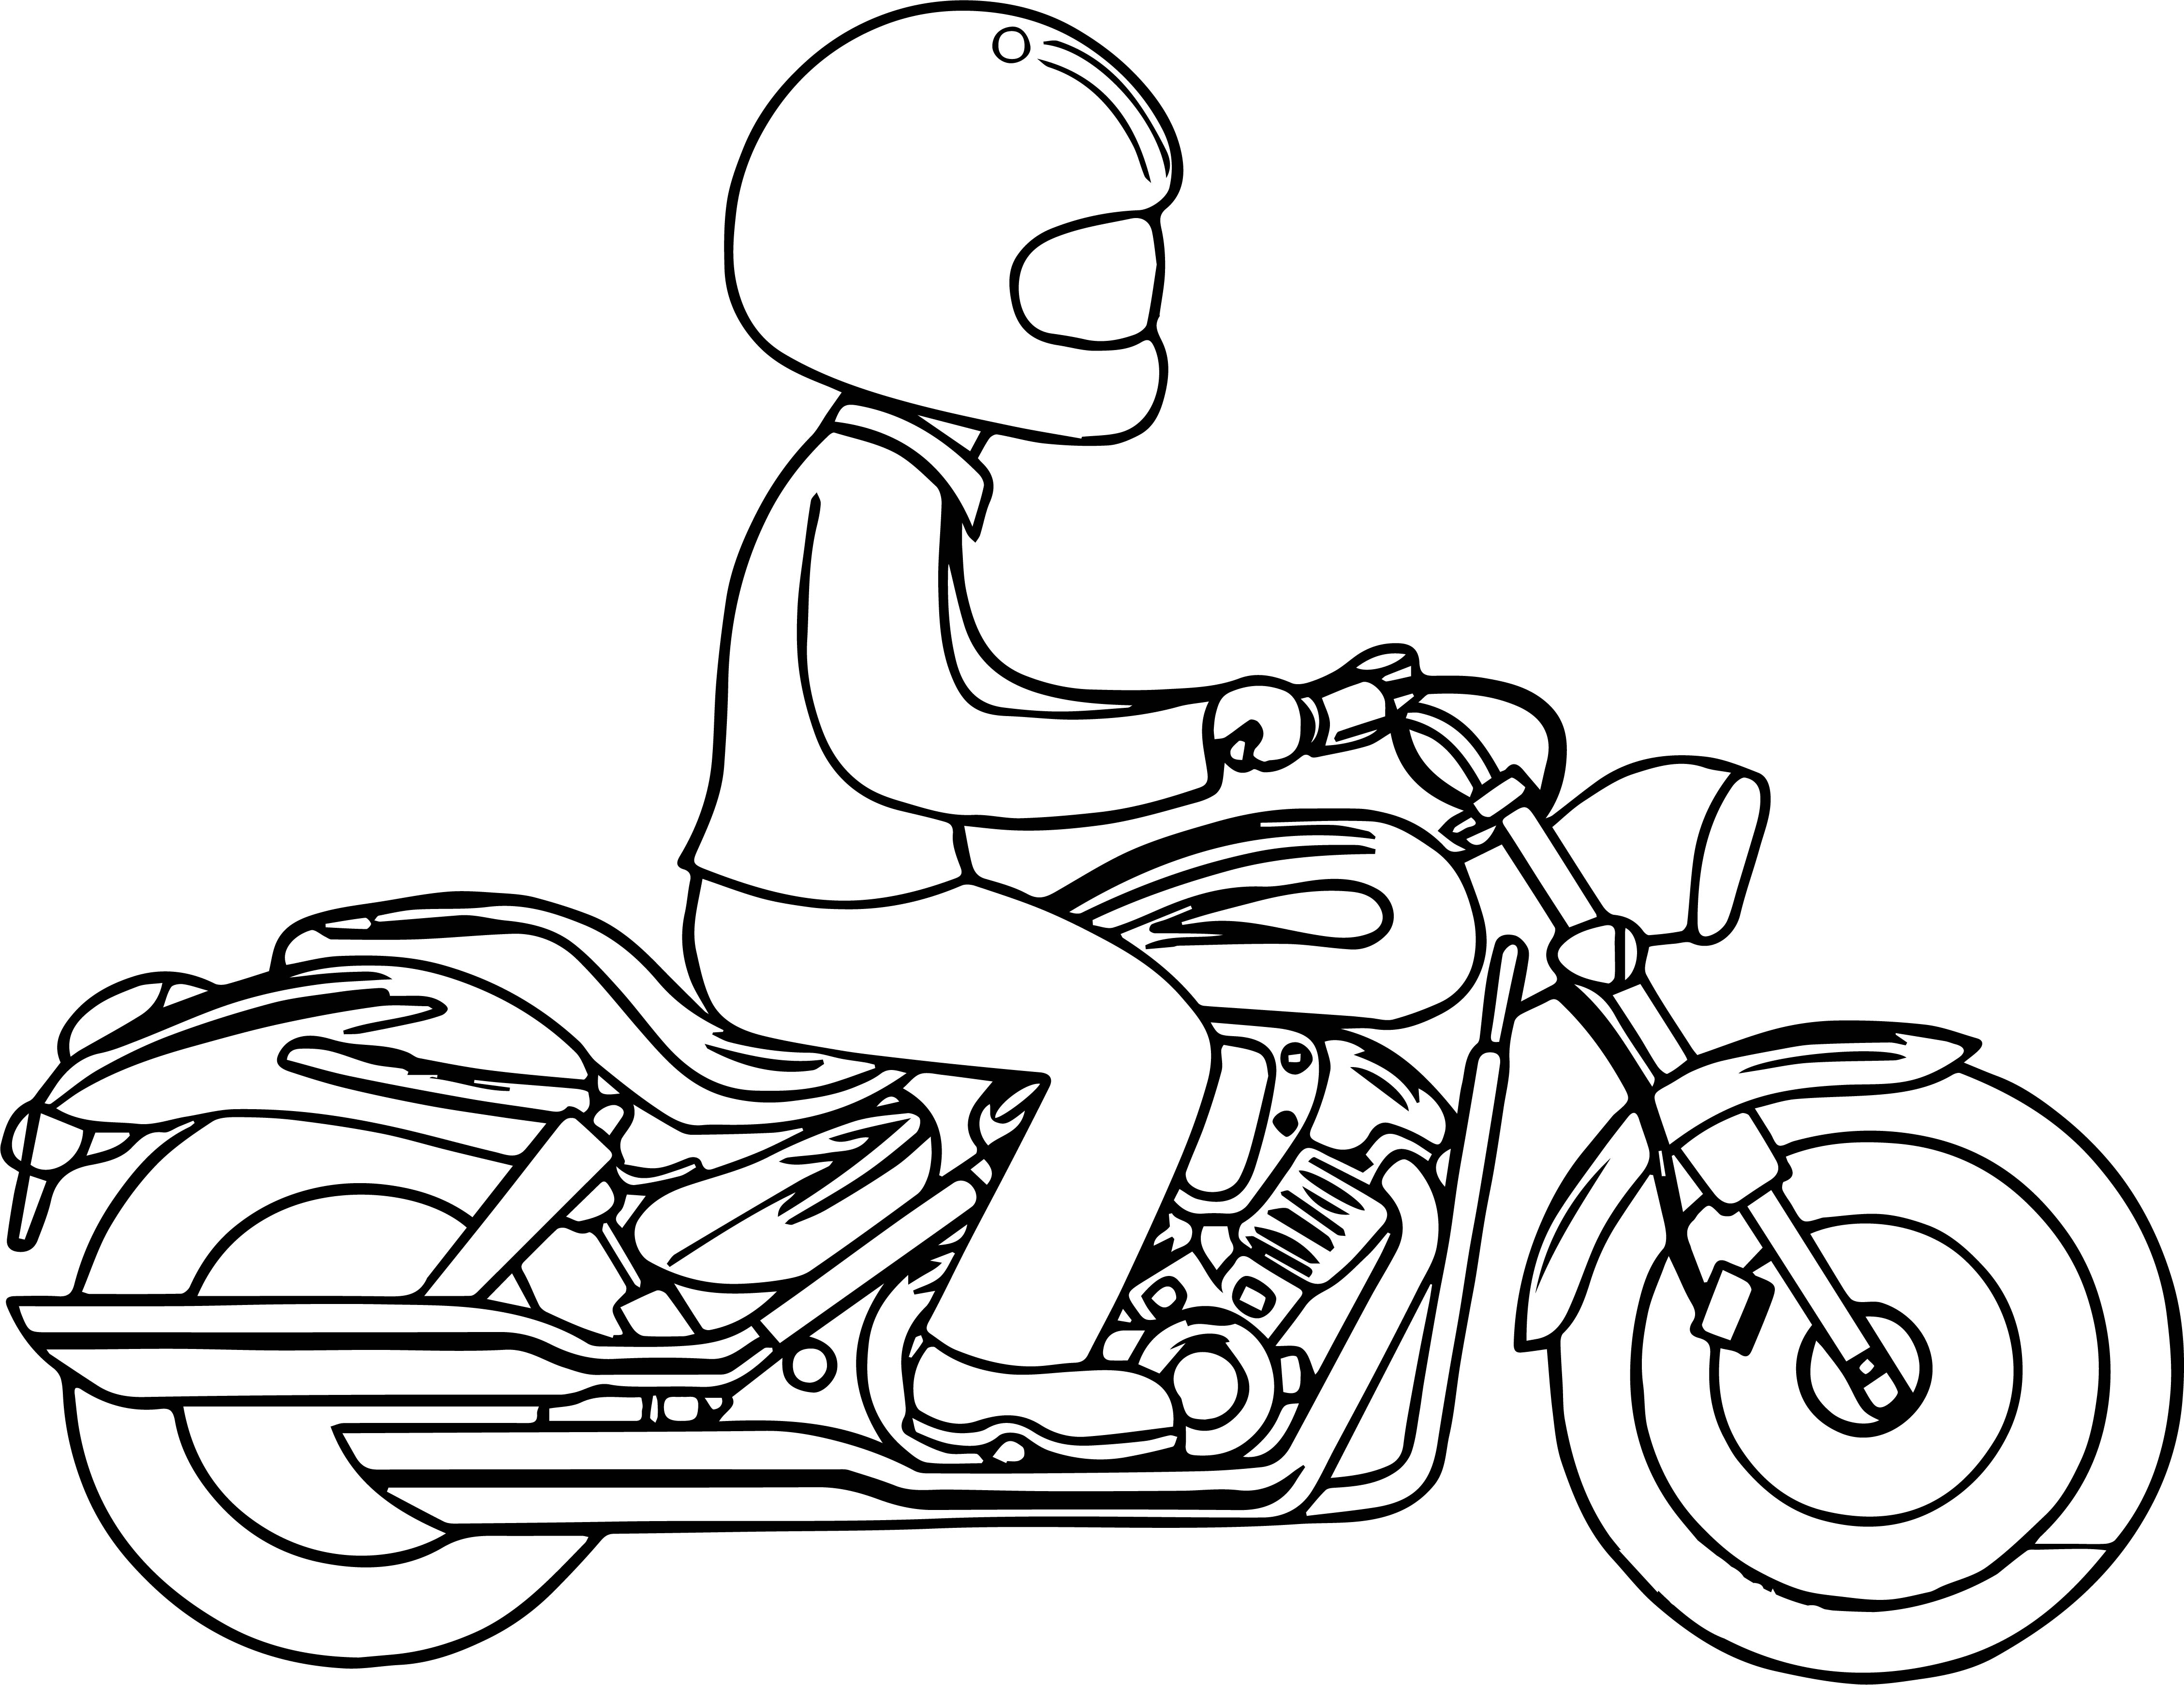 Man Riding A Motorcycle Coloring Page